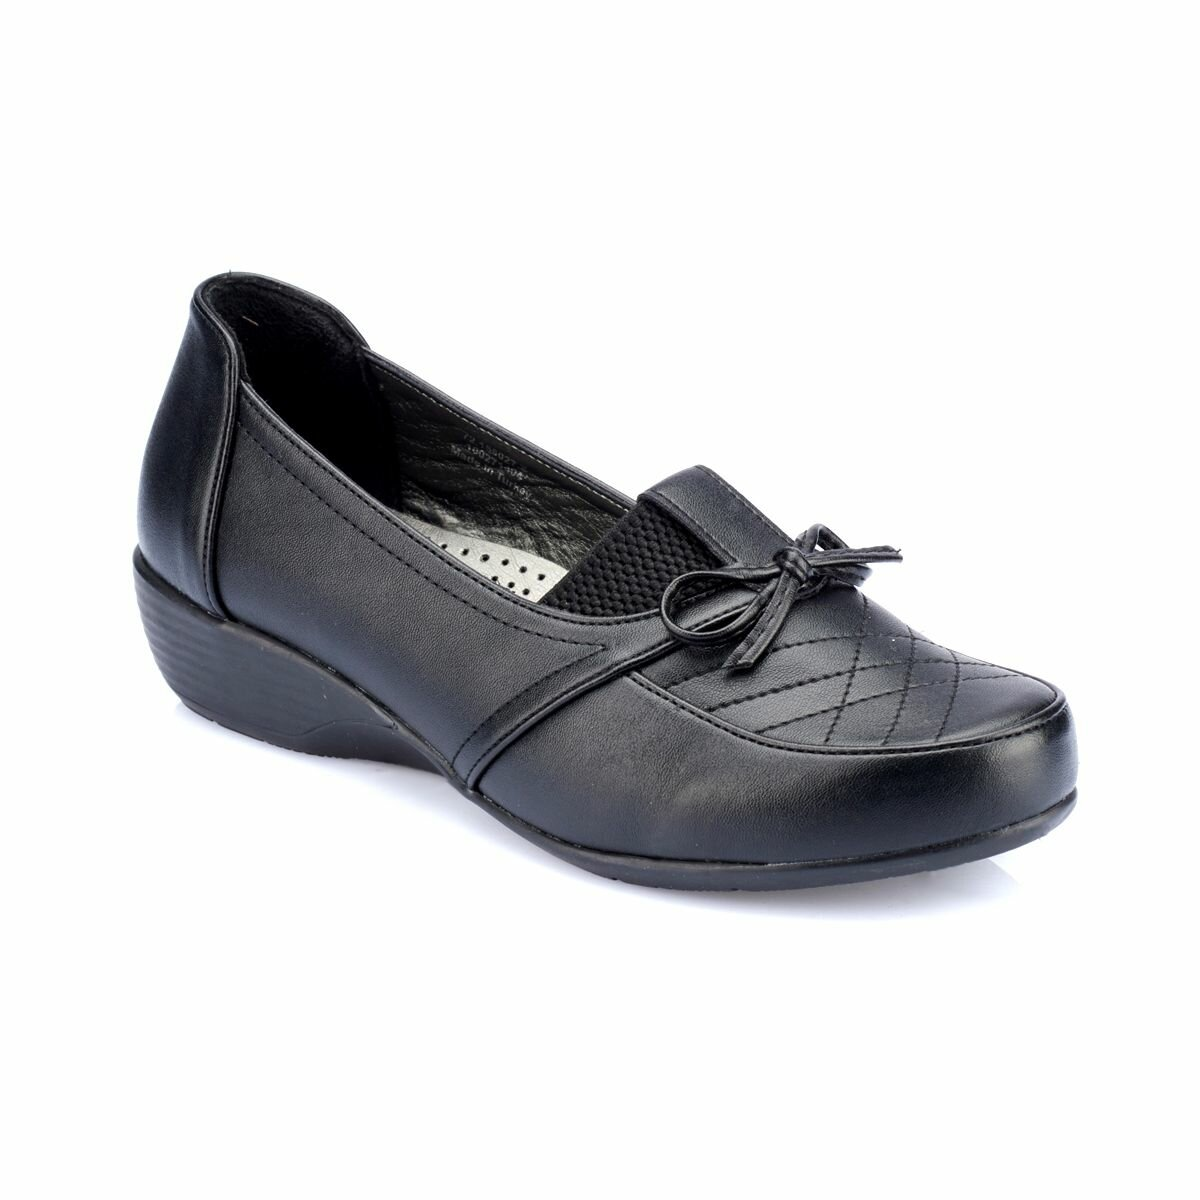 FLO 82. 158027.Z Black Women Shoes Polaris